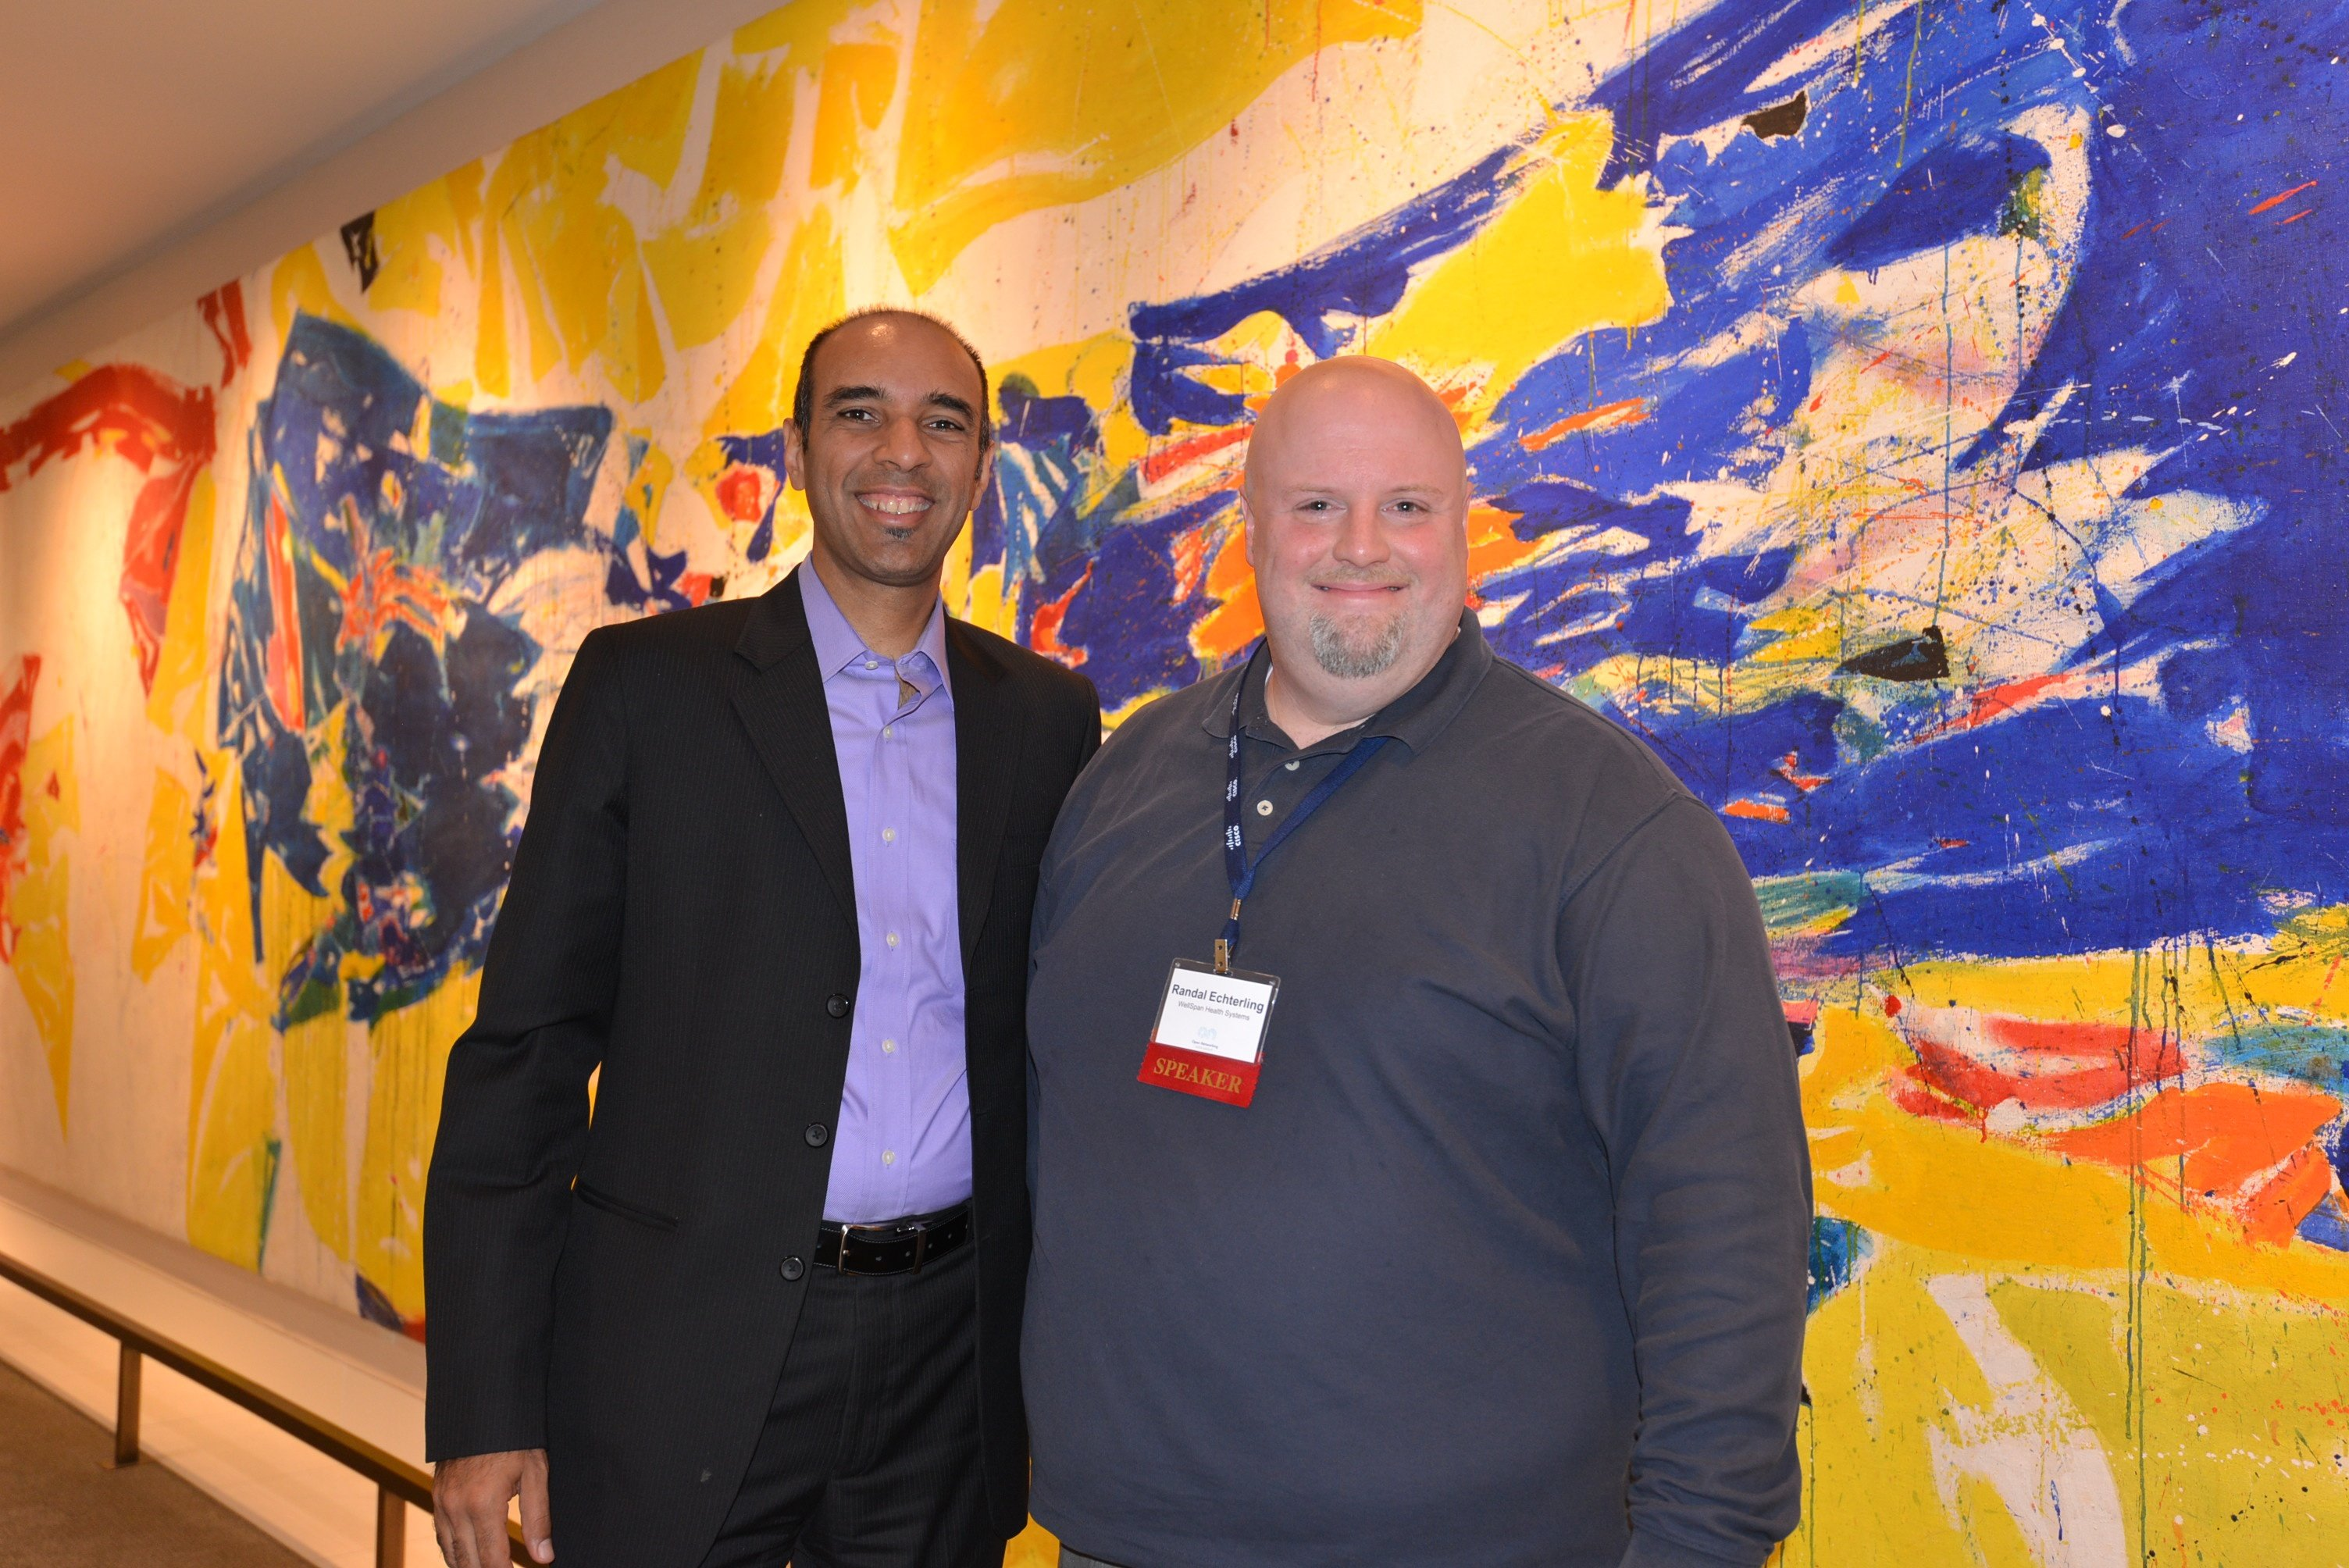 ONUG Conference Luncheon Partnership Series speakers, Shehzad Merchant and Randal Echterling